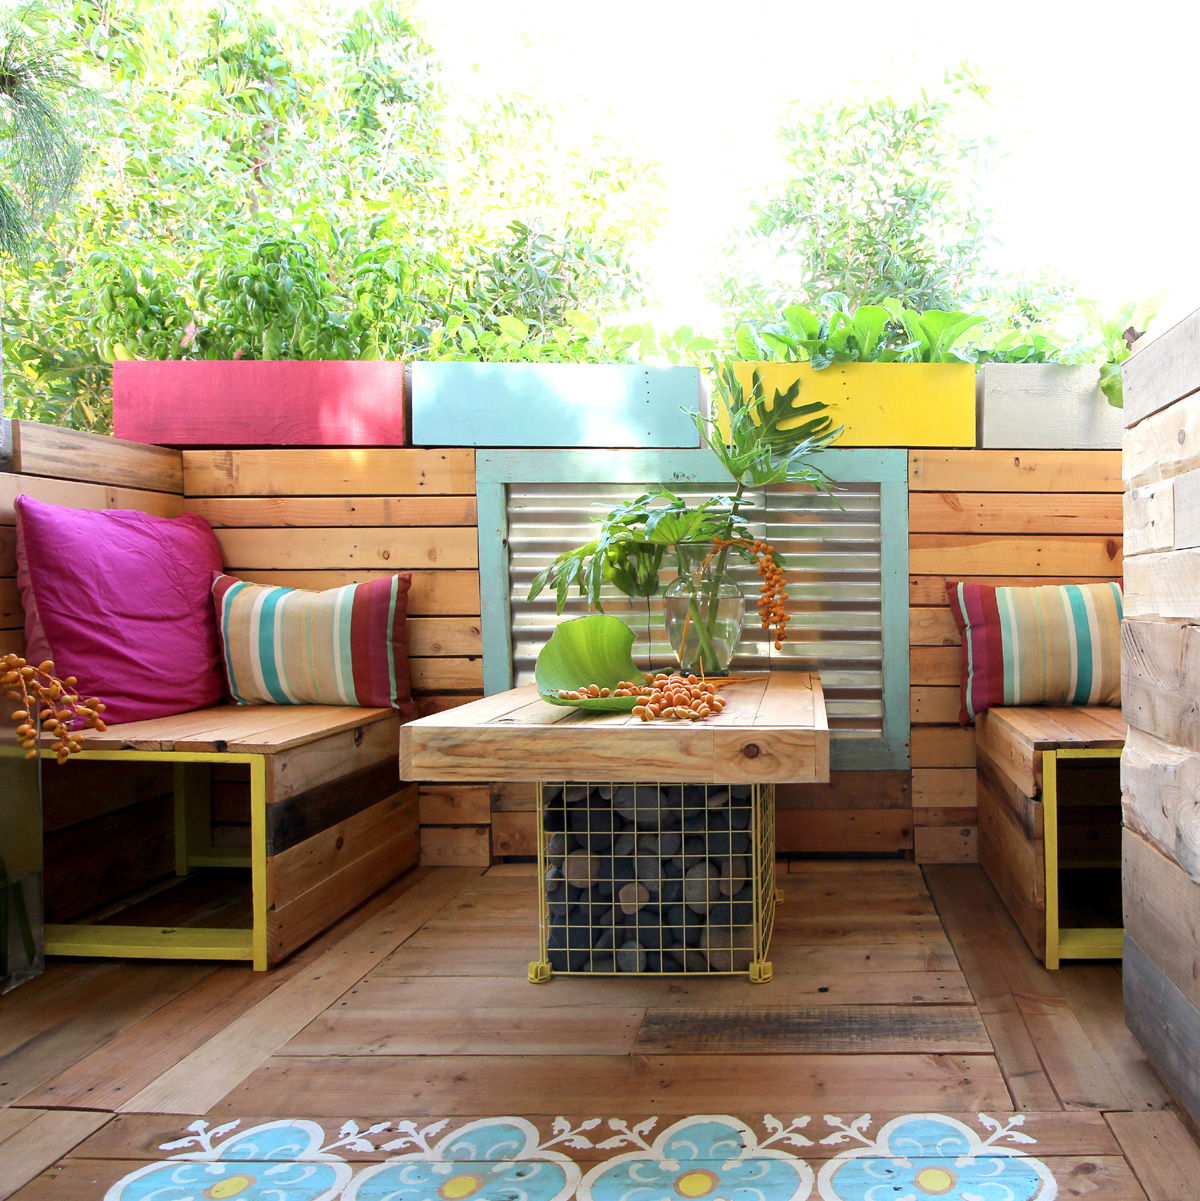 pallet furniture garden. This Pallet-based Patio Proves That Even Renters Can Have Stylishly-remodeled Spaces Pallet Furniture Garden